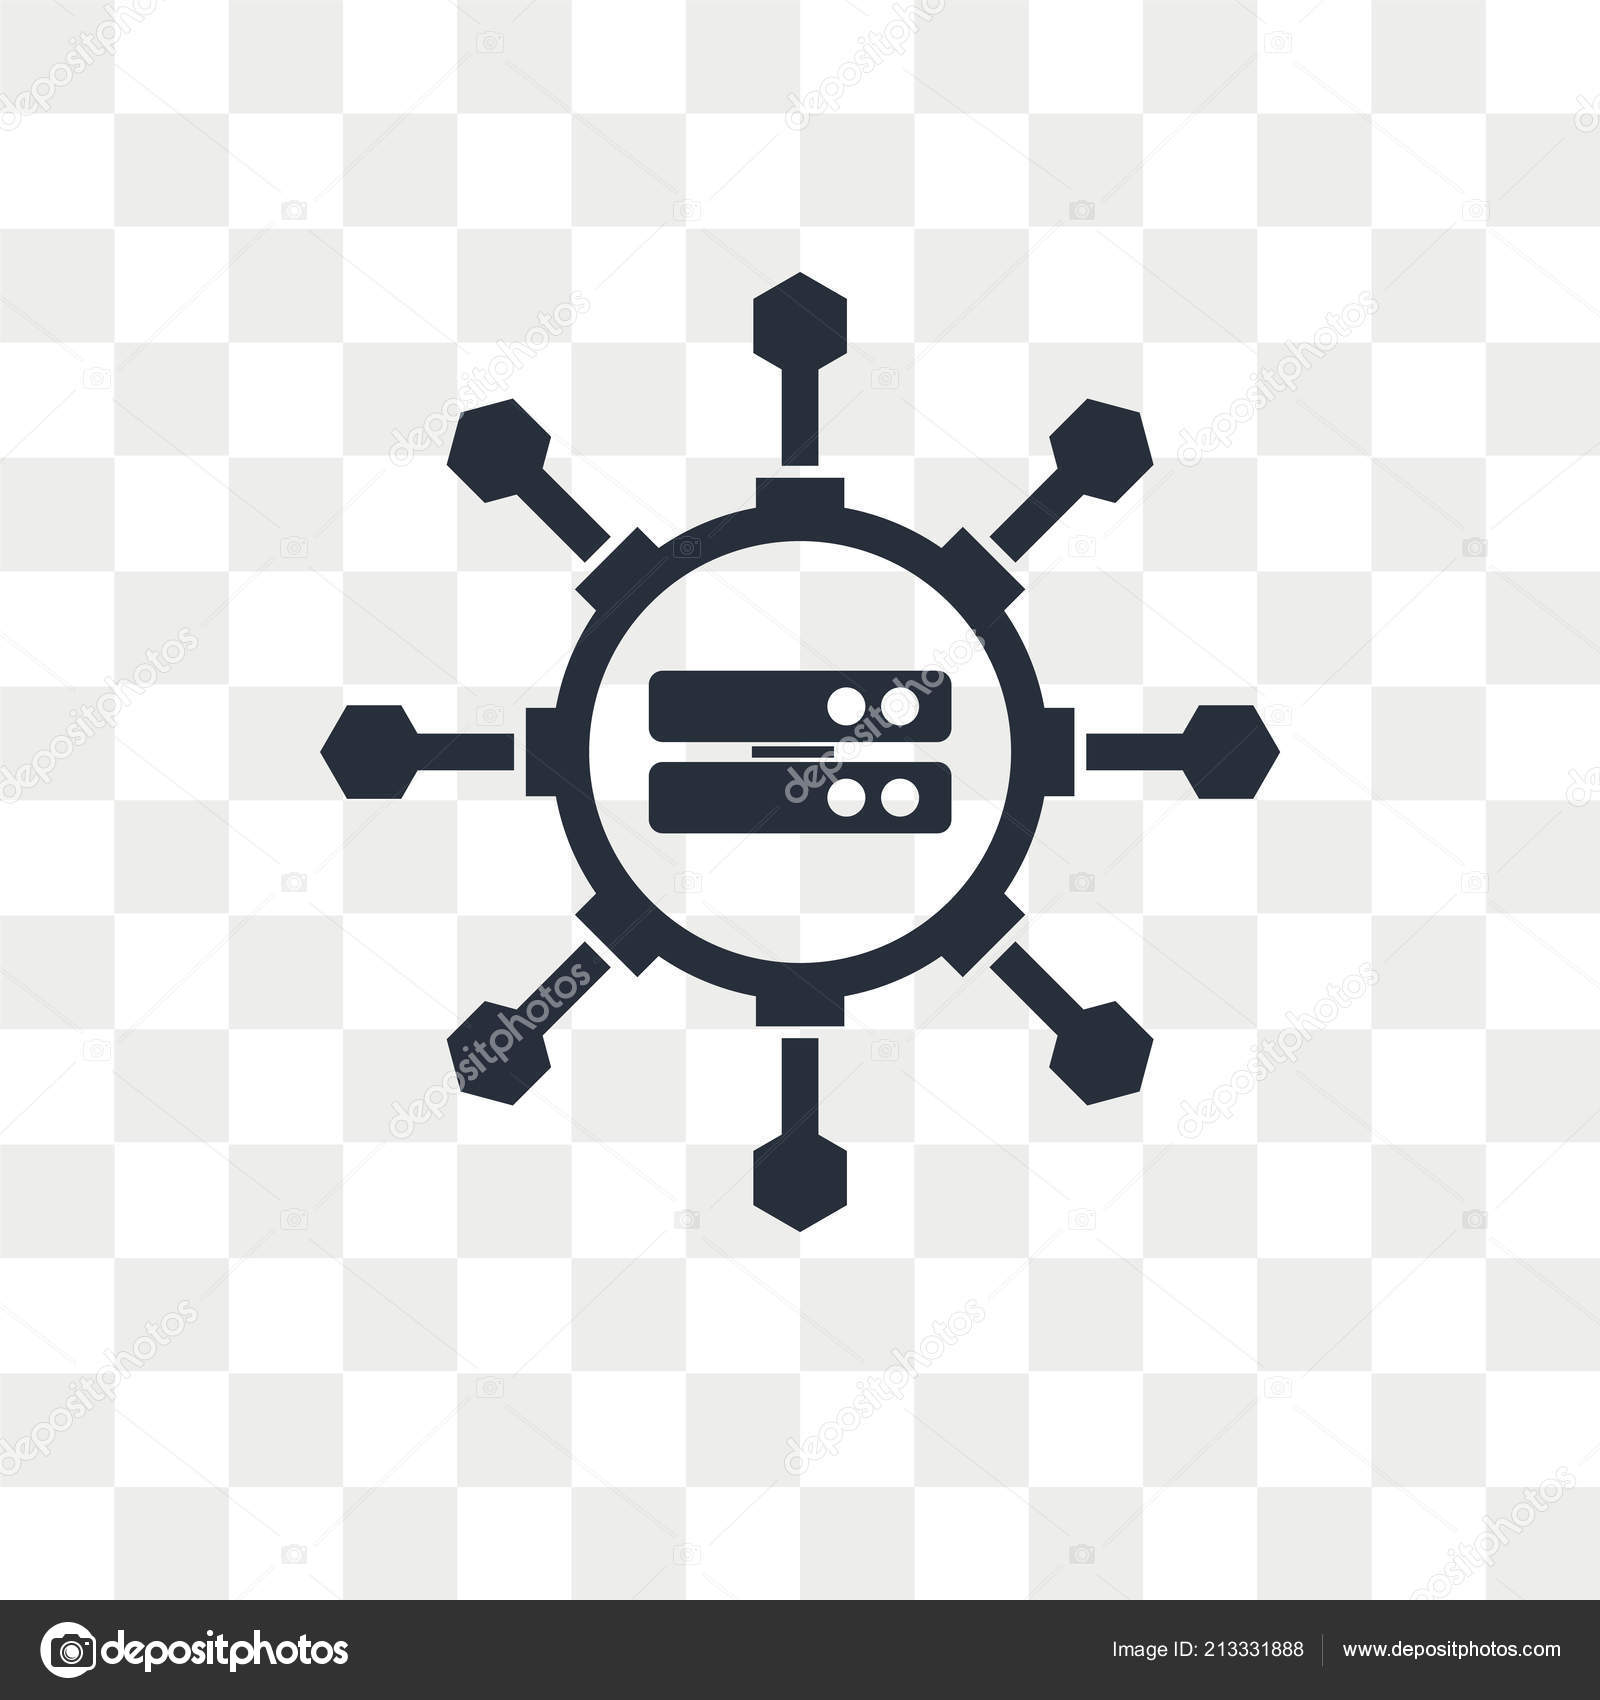 big data scientist vector icon isolated on transparent backgroun stock vector c vectorstockcompany 213331888 https depositphotos com 213331888 stock illustration big data scientist vector icon html